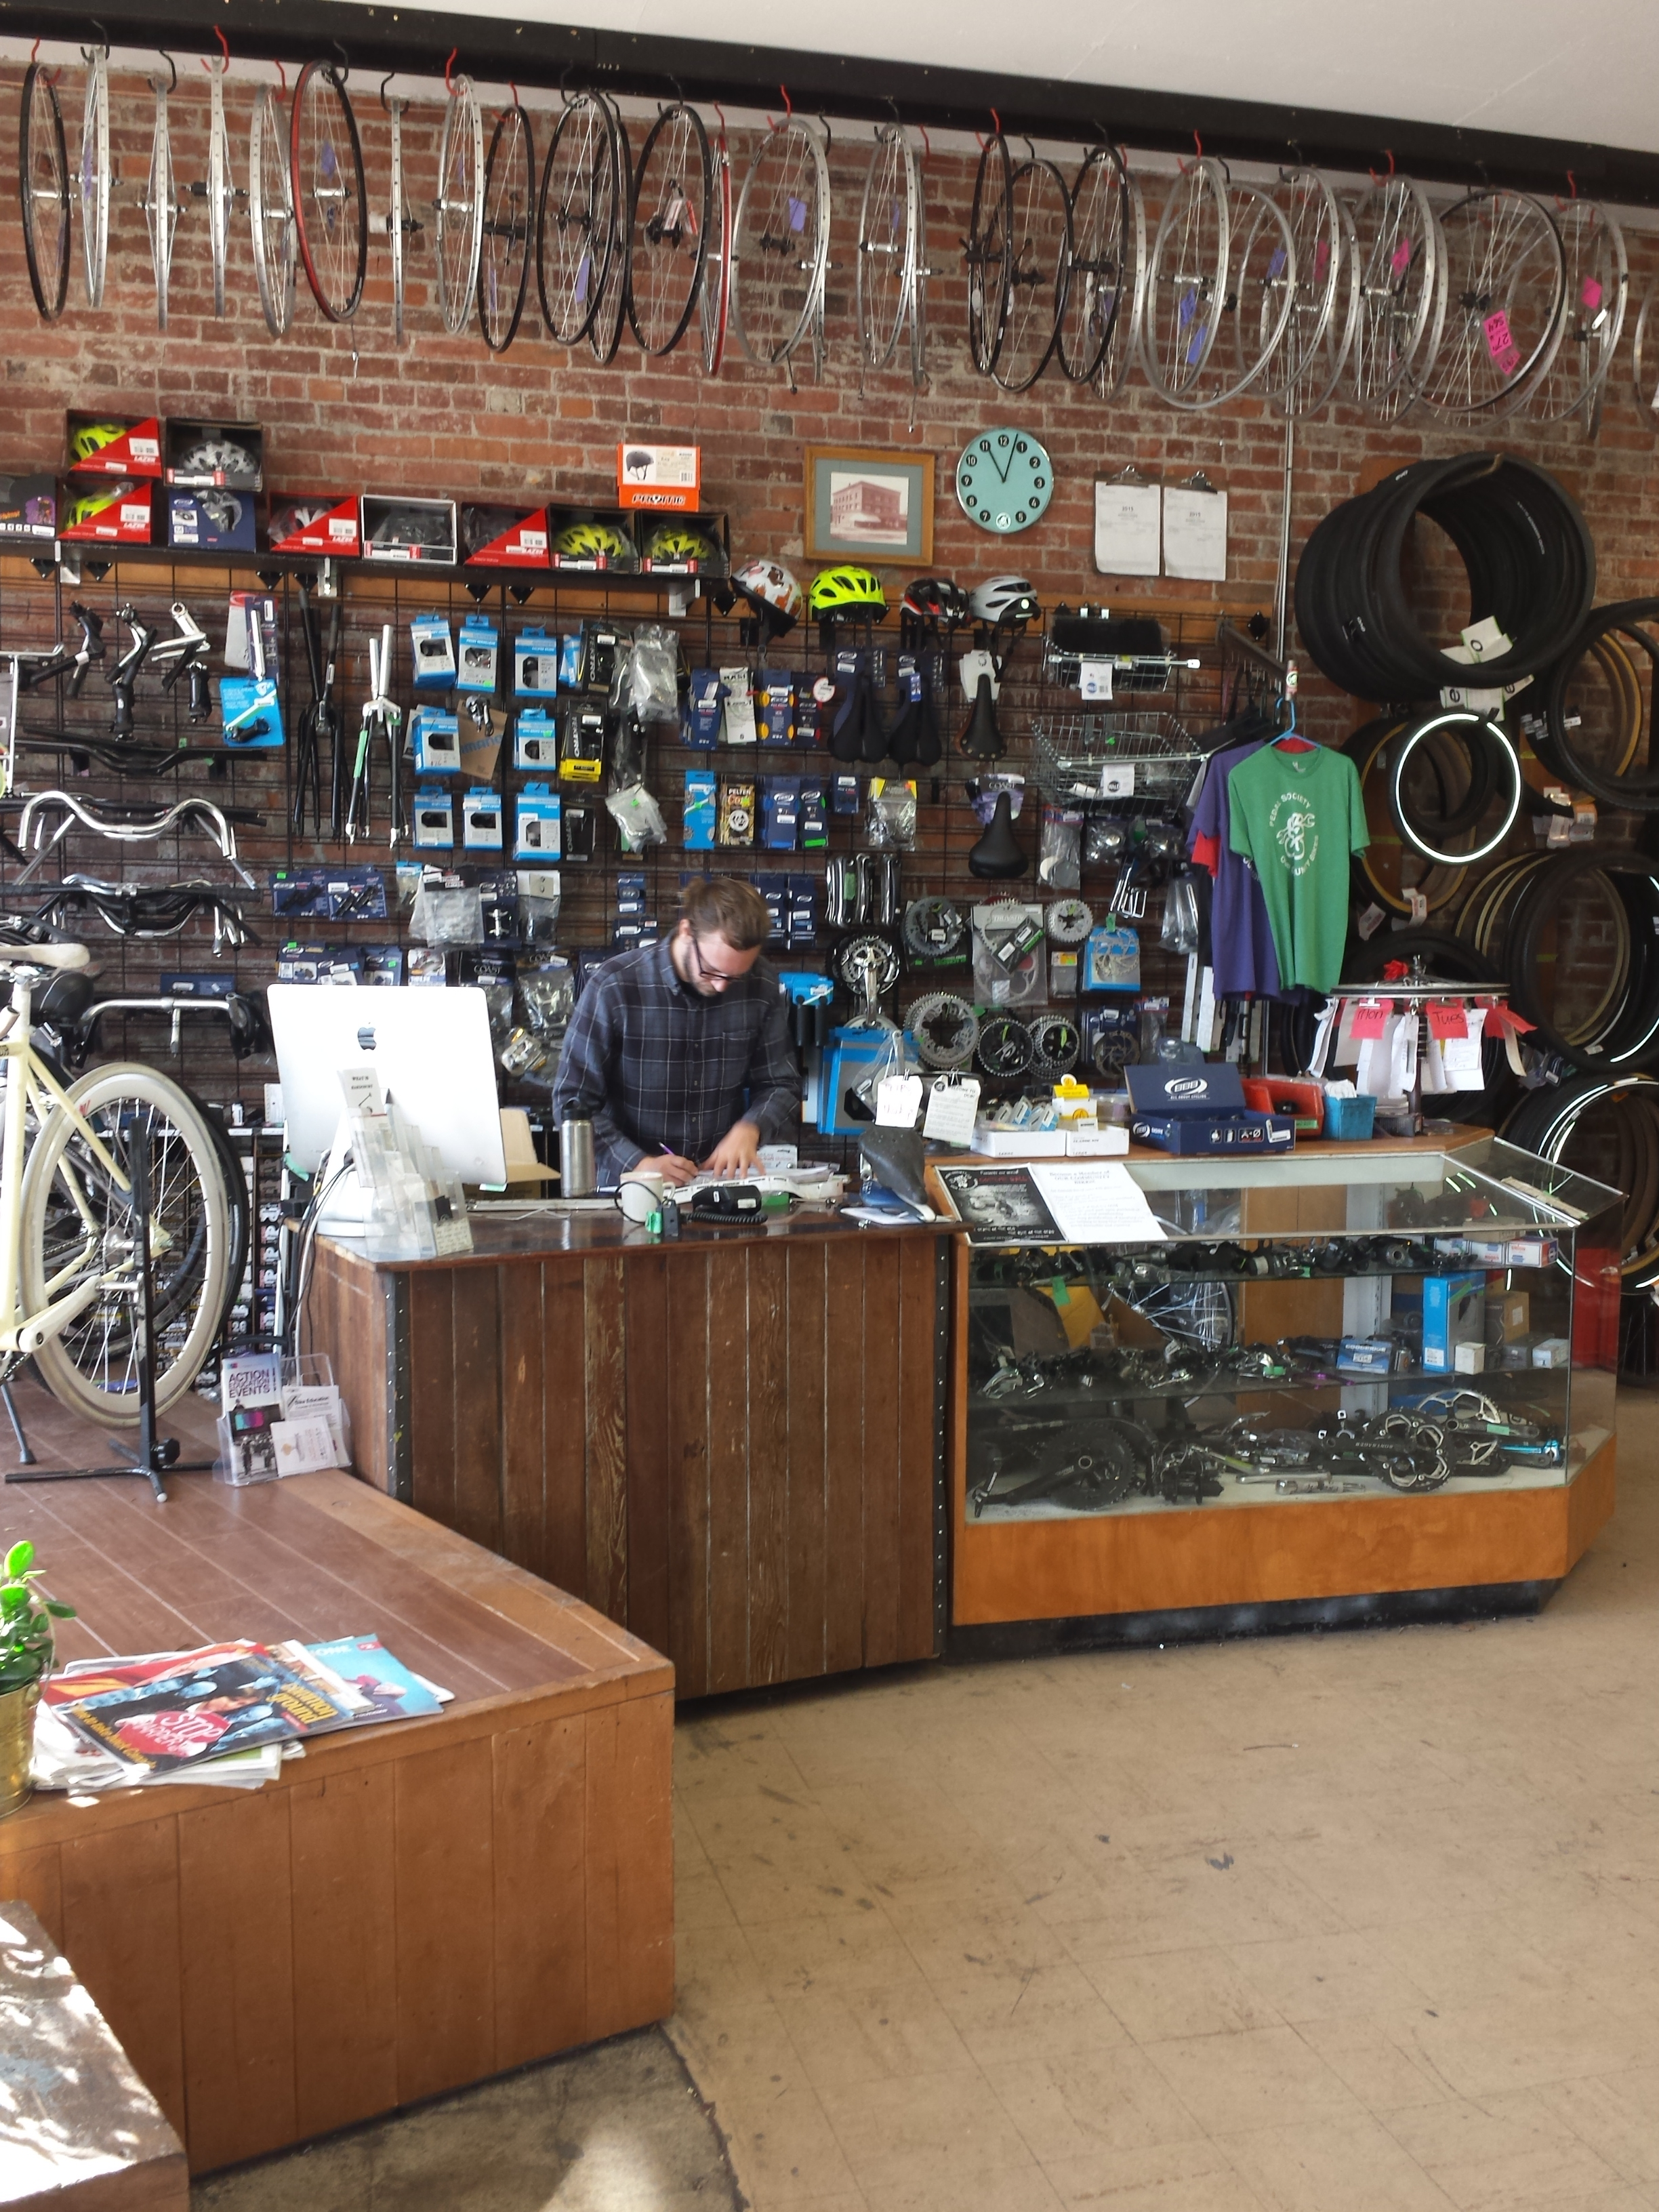 Lot of refurbished and second hand supplies to reduce financial barriers to owning your own bike